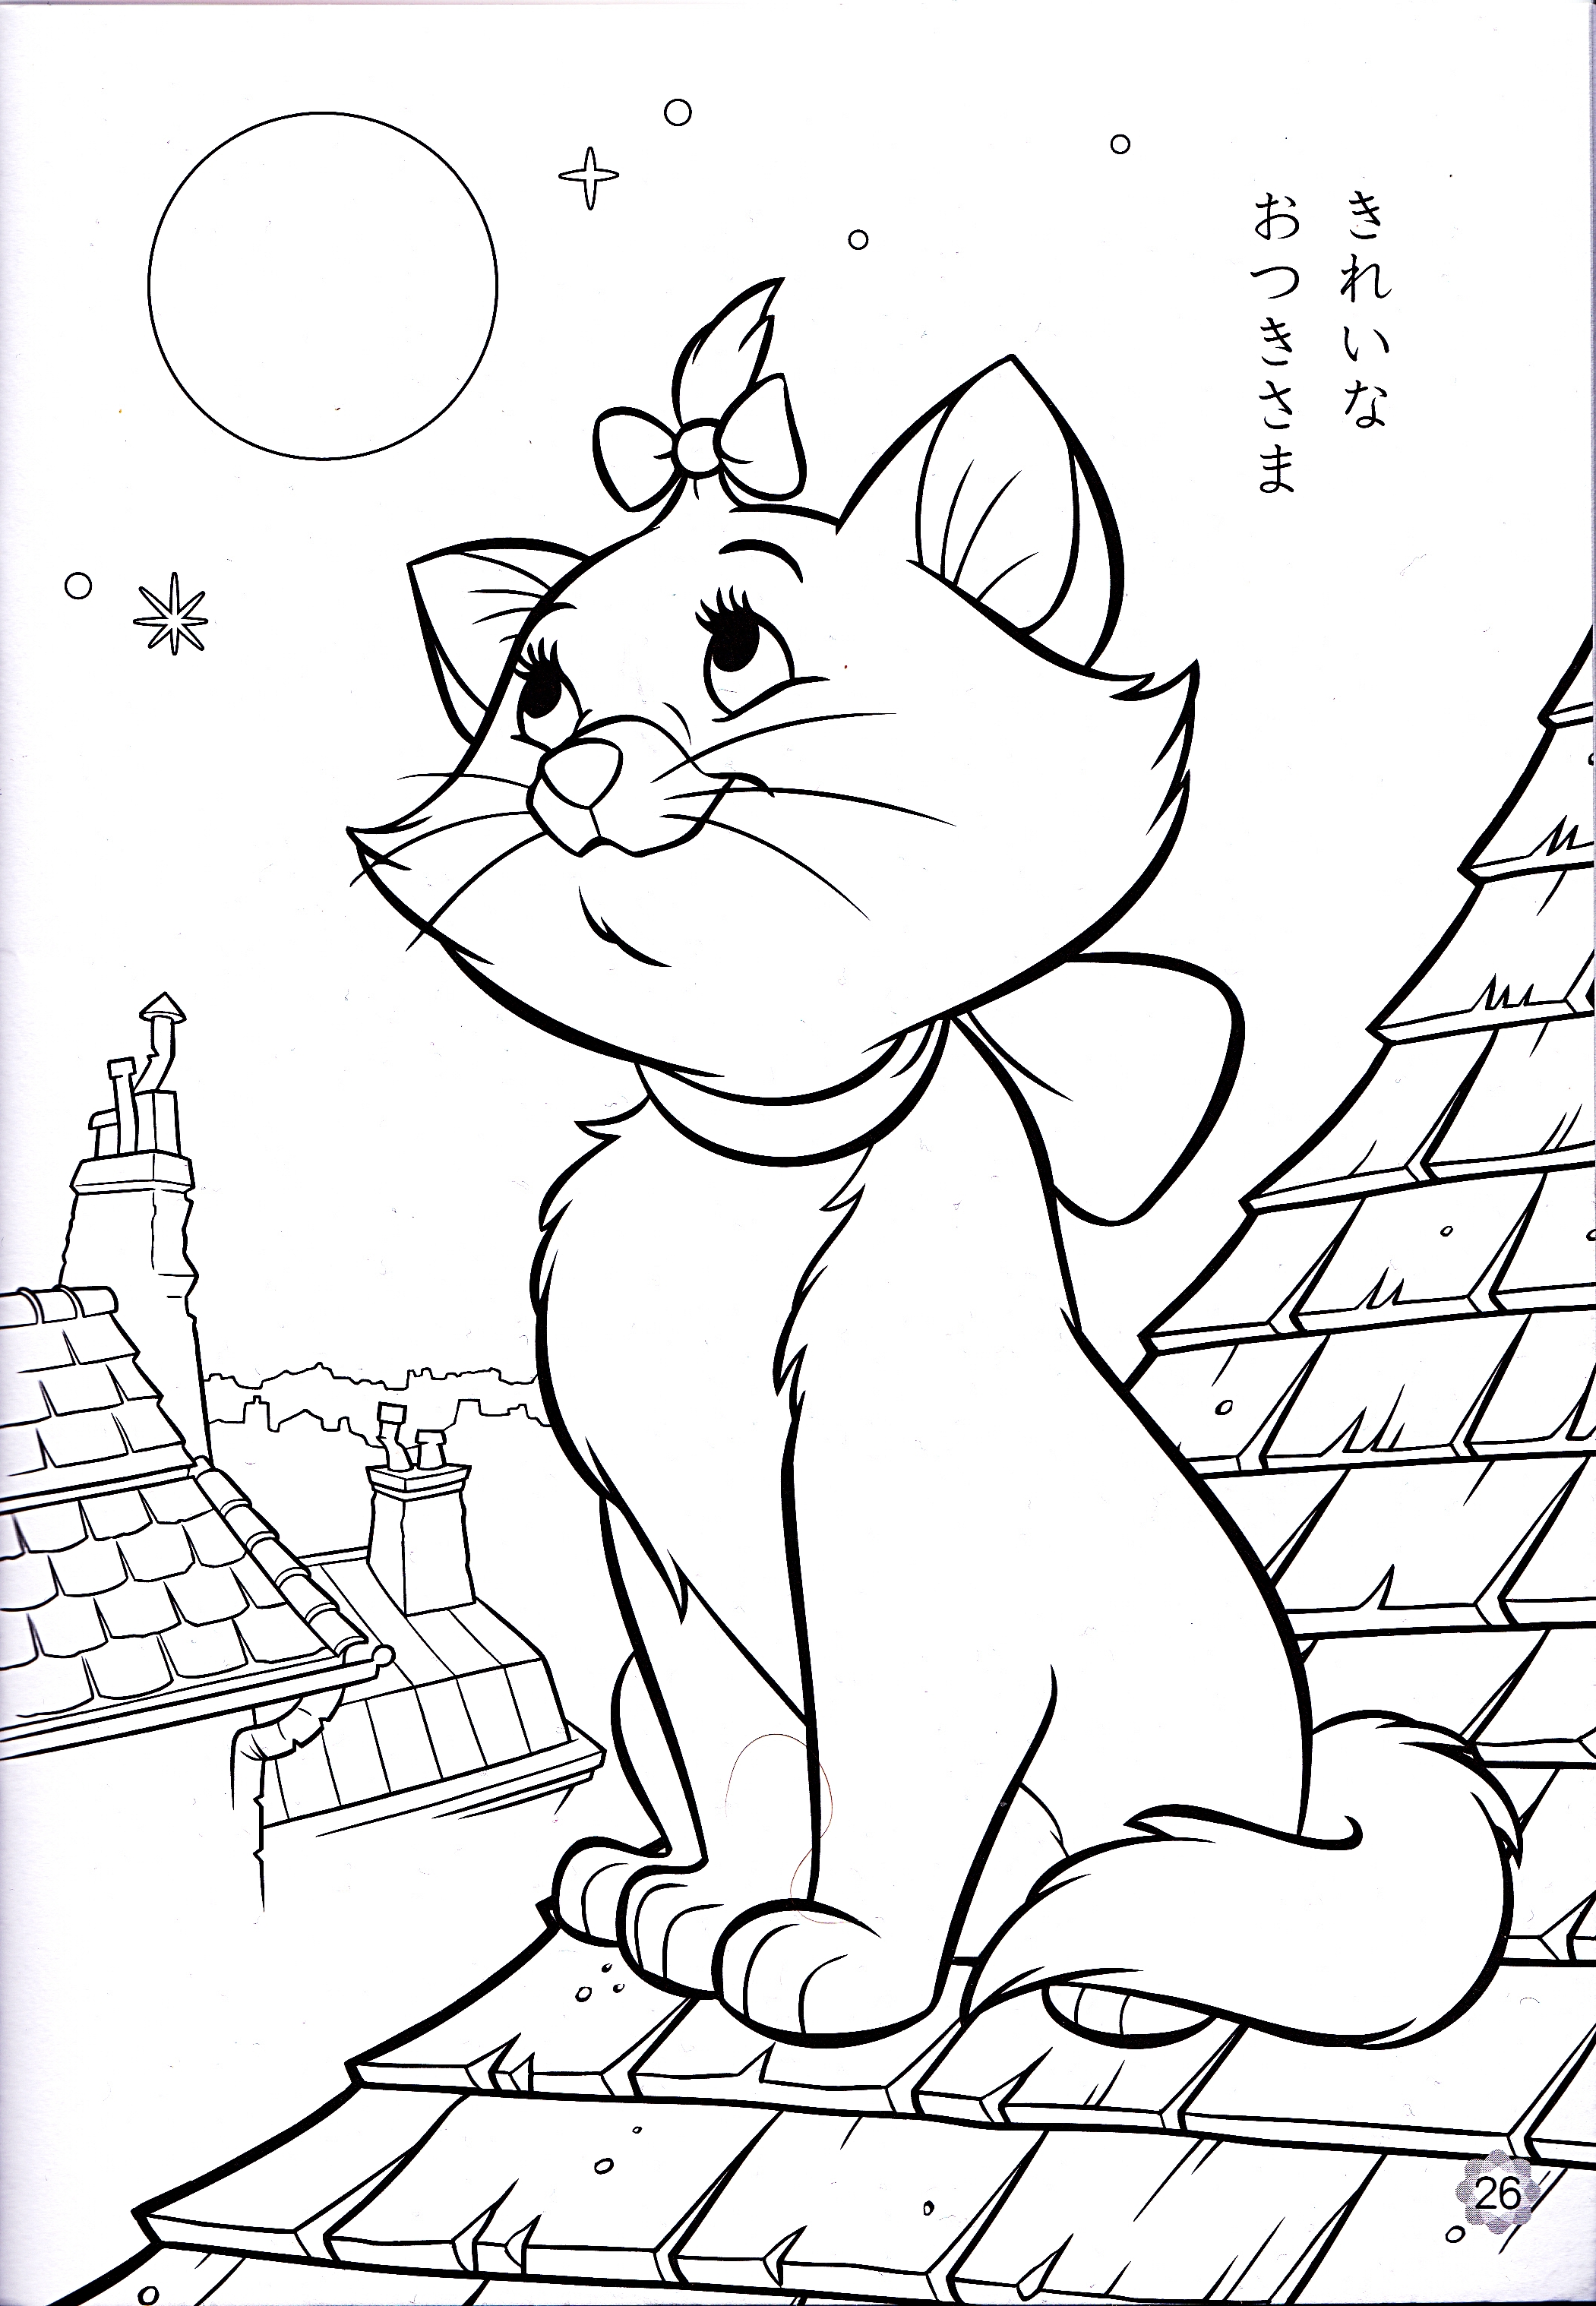 Walt Disney Coloring Pages - Marie